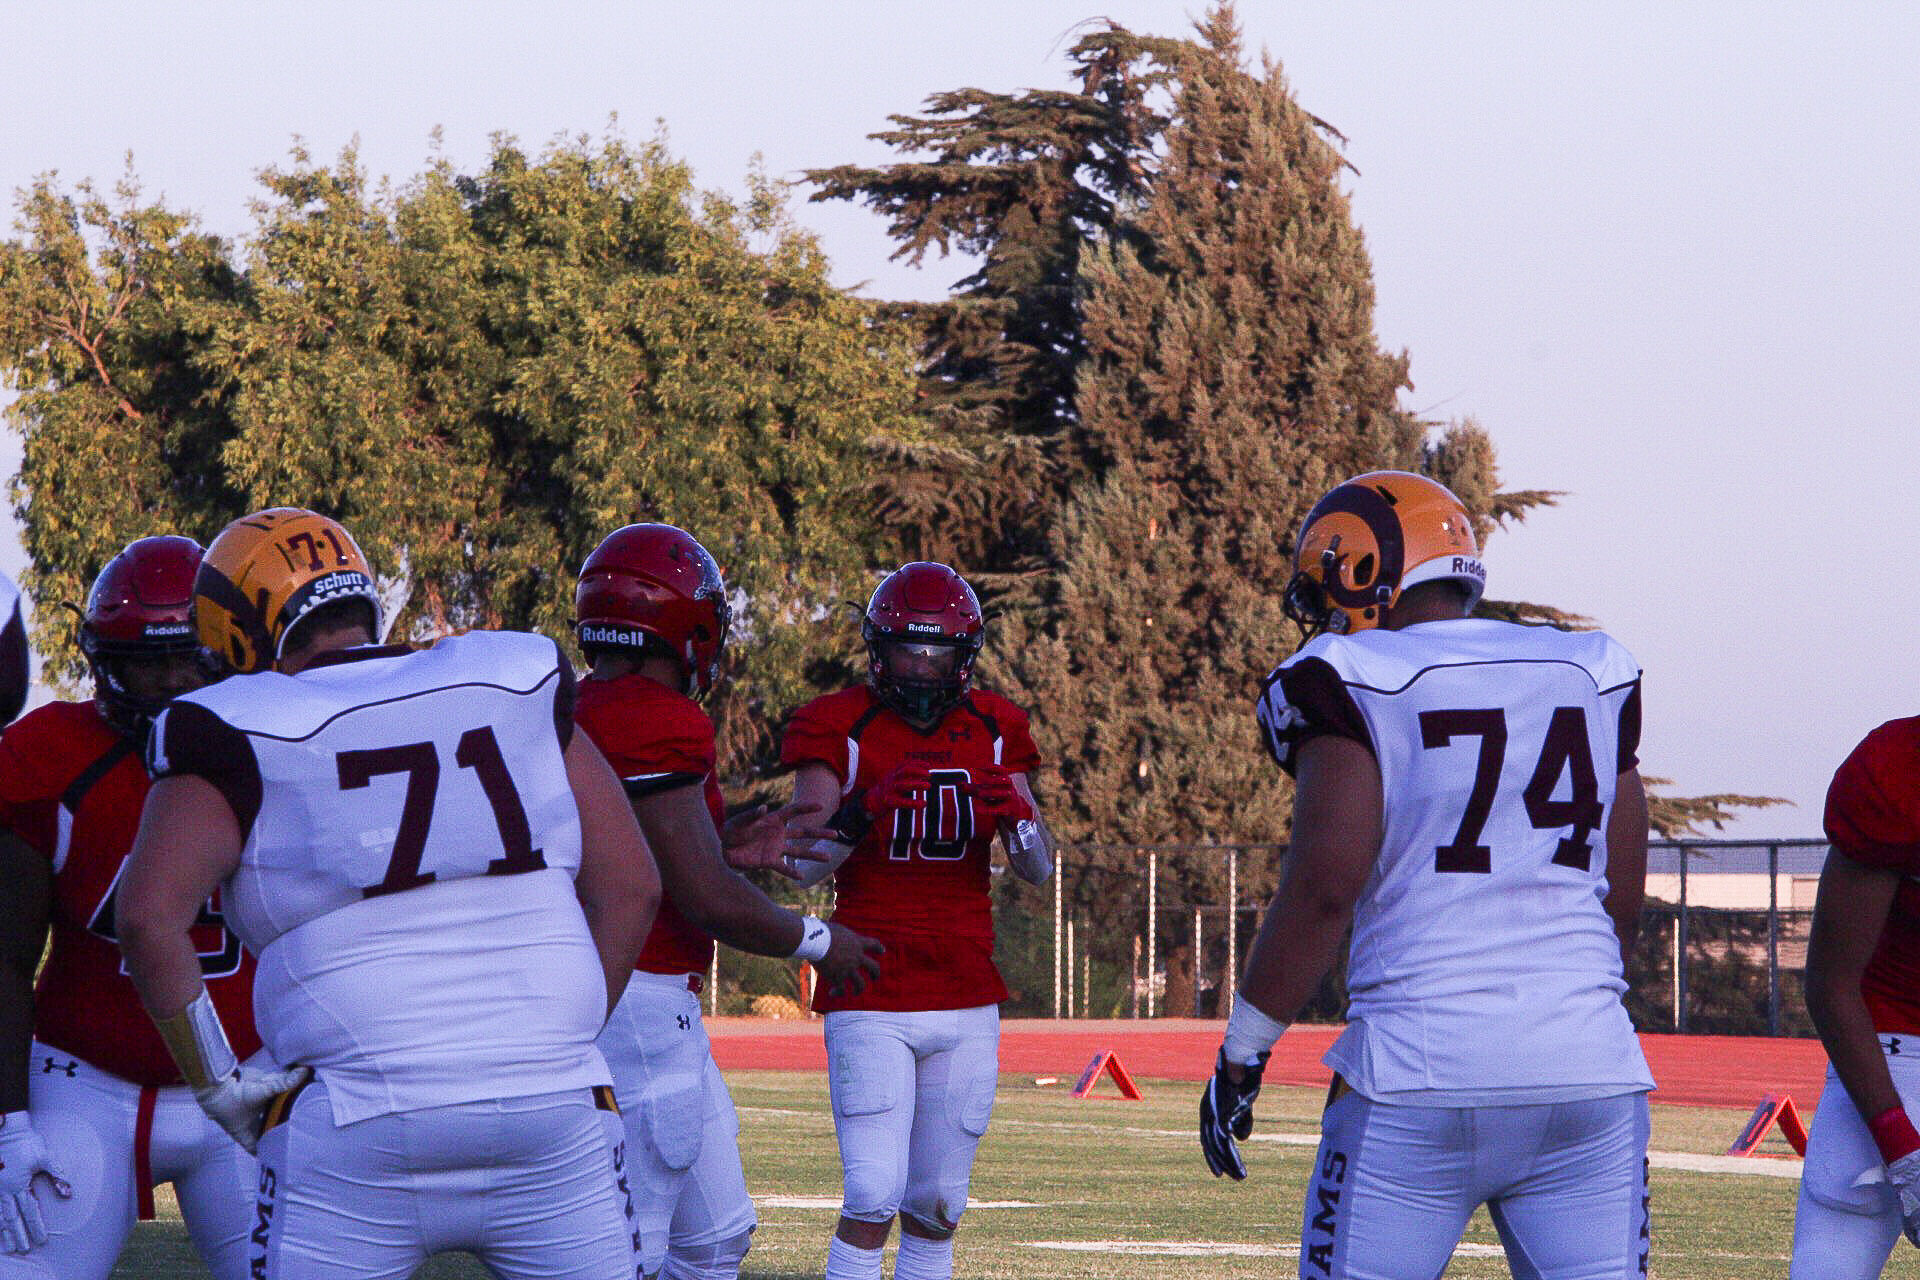 Jerin Appling making mid-game defensive adjustments during Saturday's game against Victor Valley College. Photos by Joshua Gutierrez.